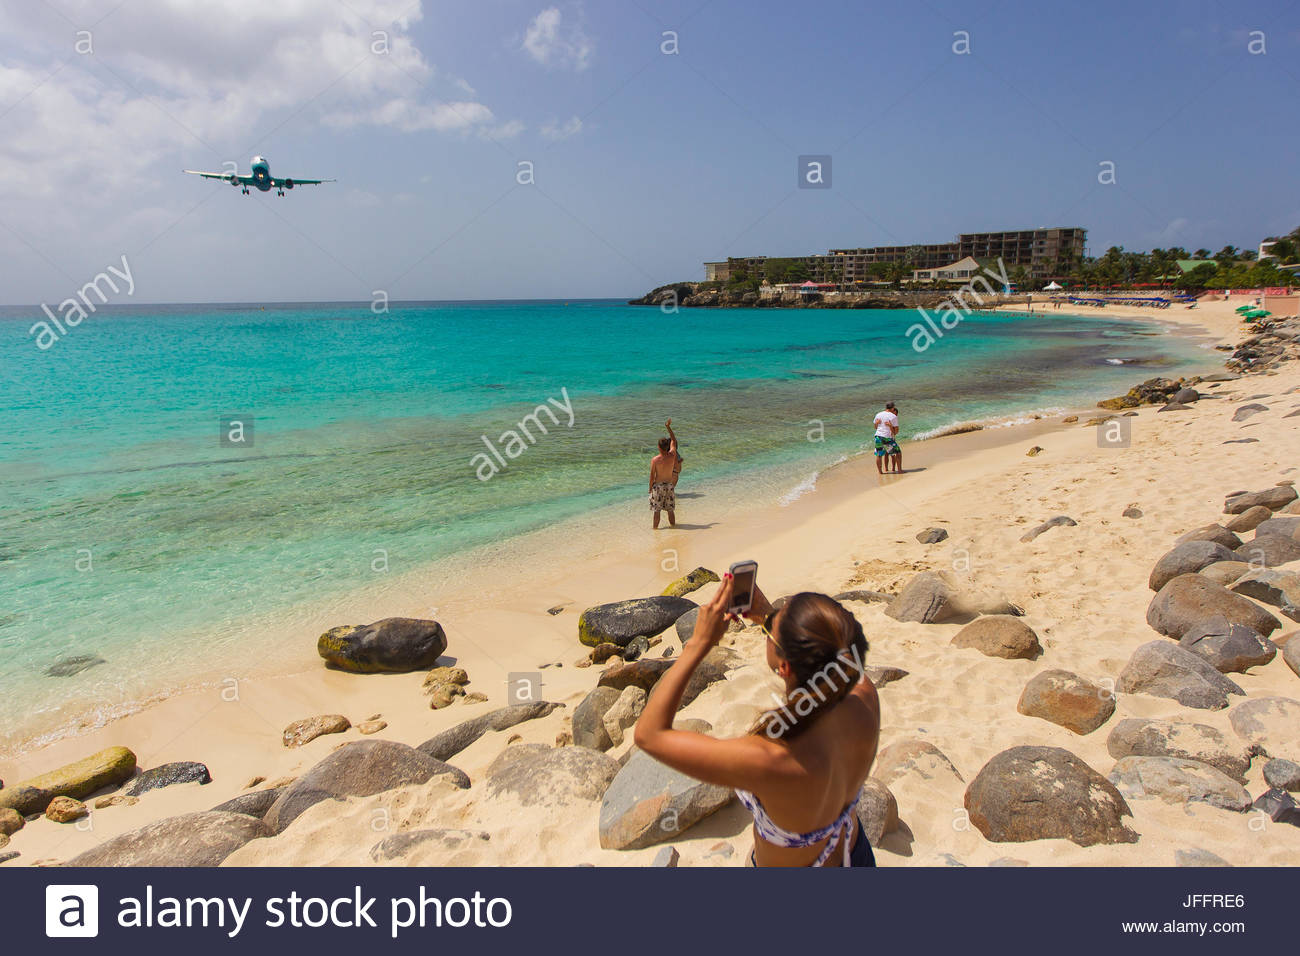 A jumbo jet airplane flying low over the water at Maho Beach before landing at Princess Juliana Airport. - Stock Image